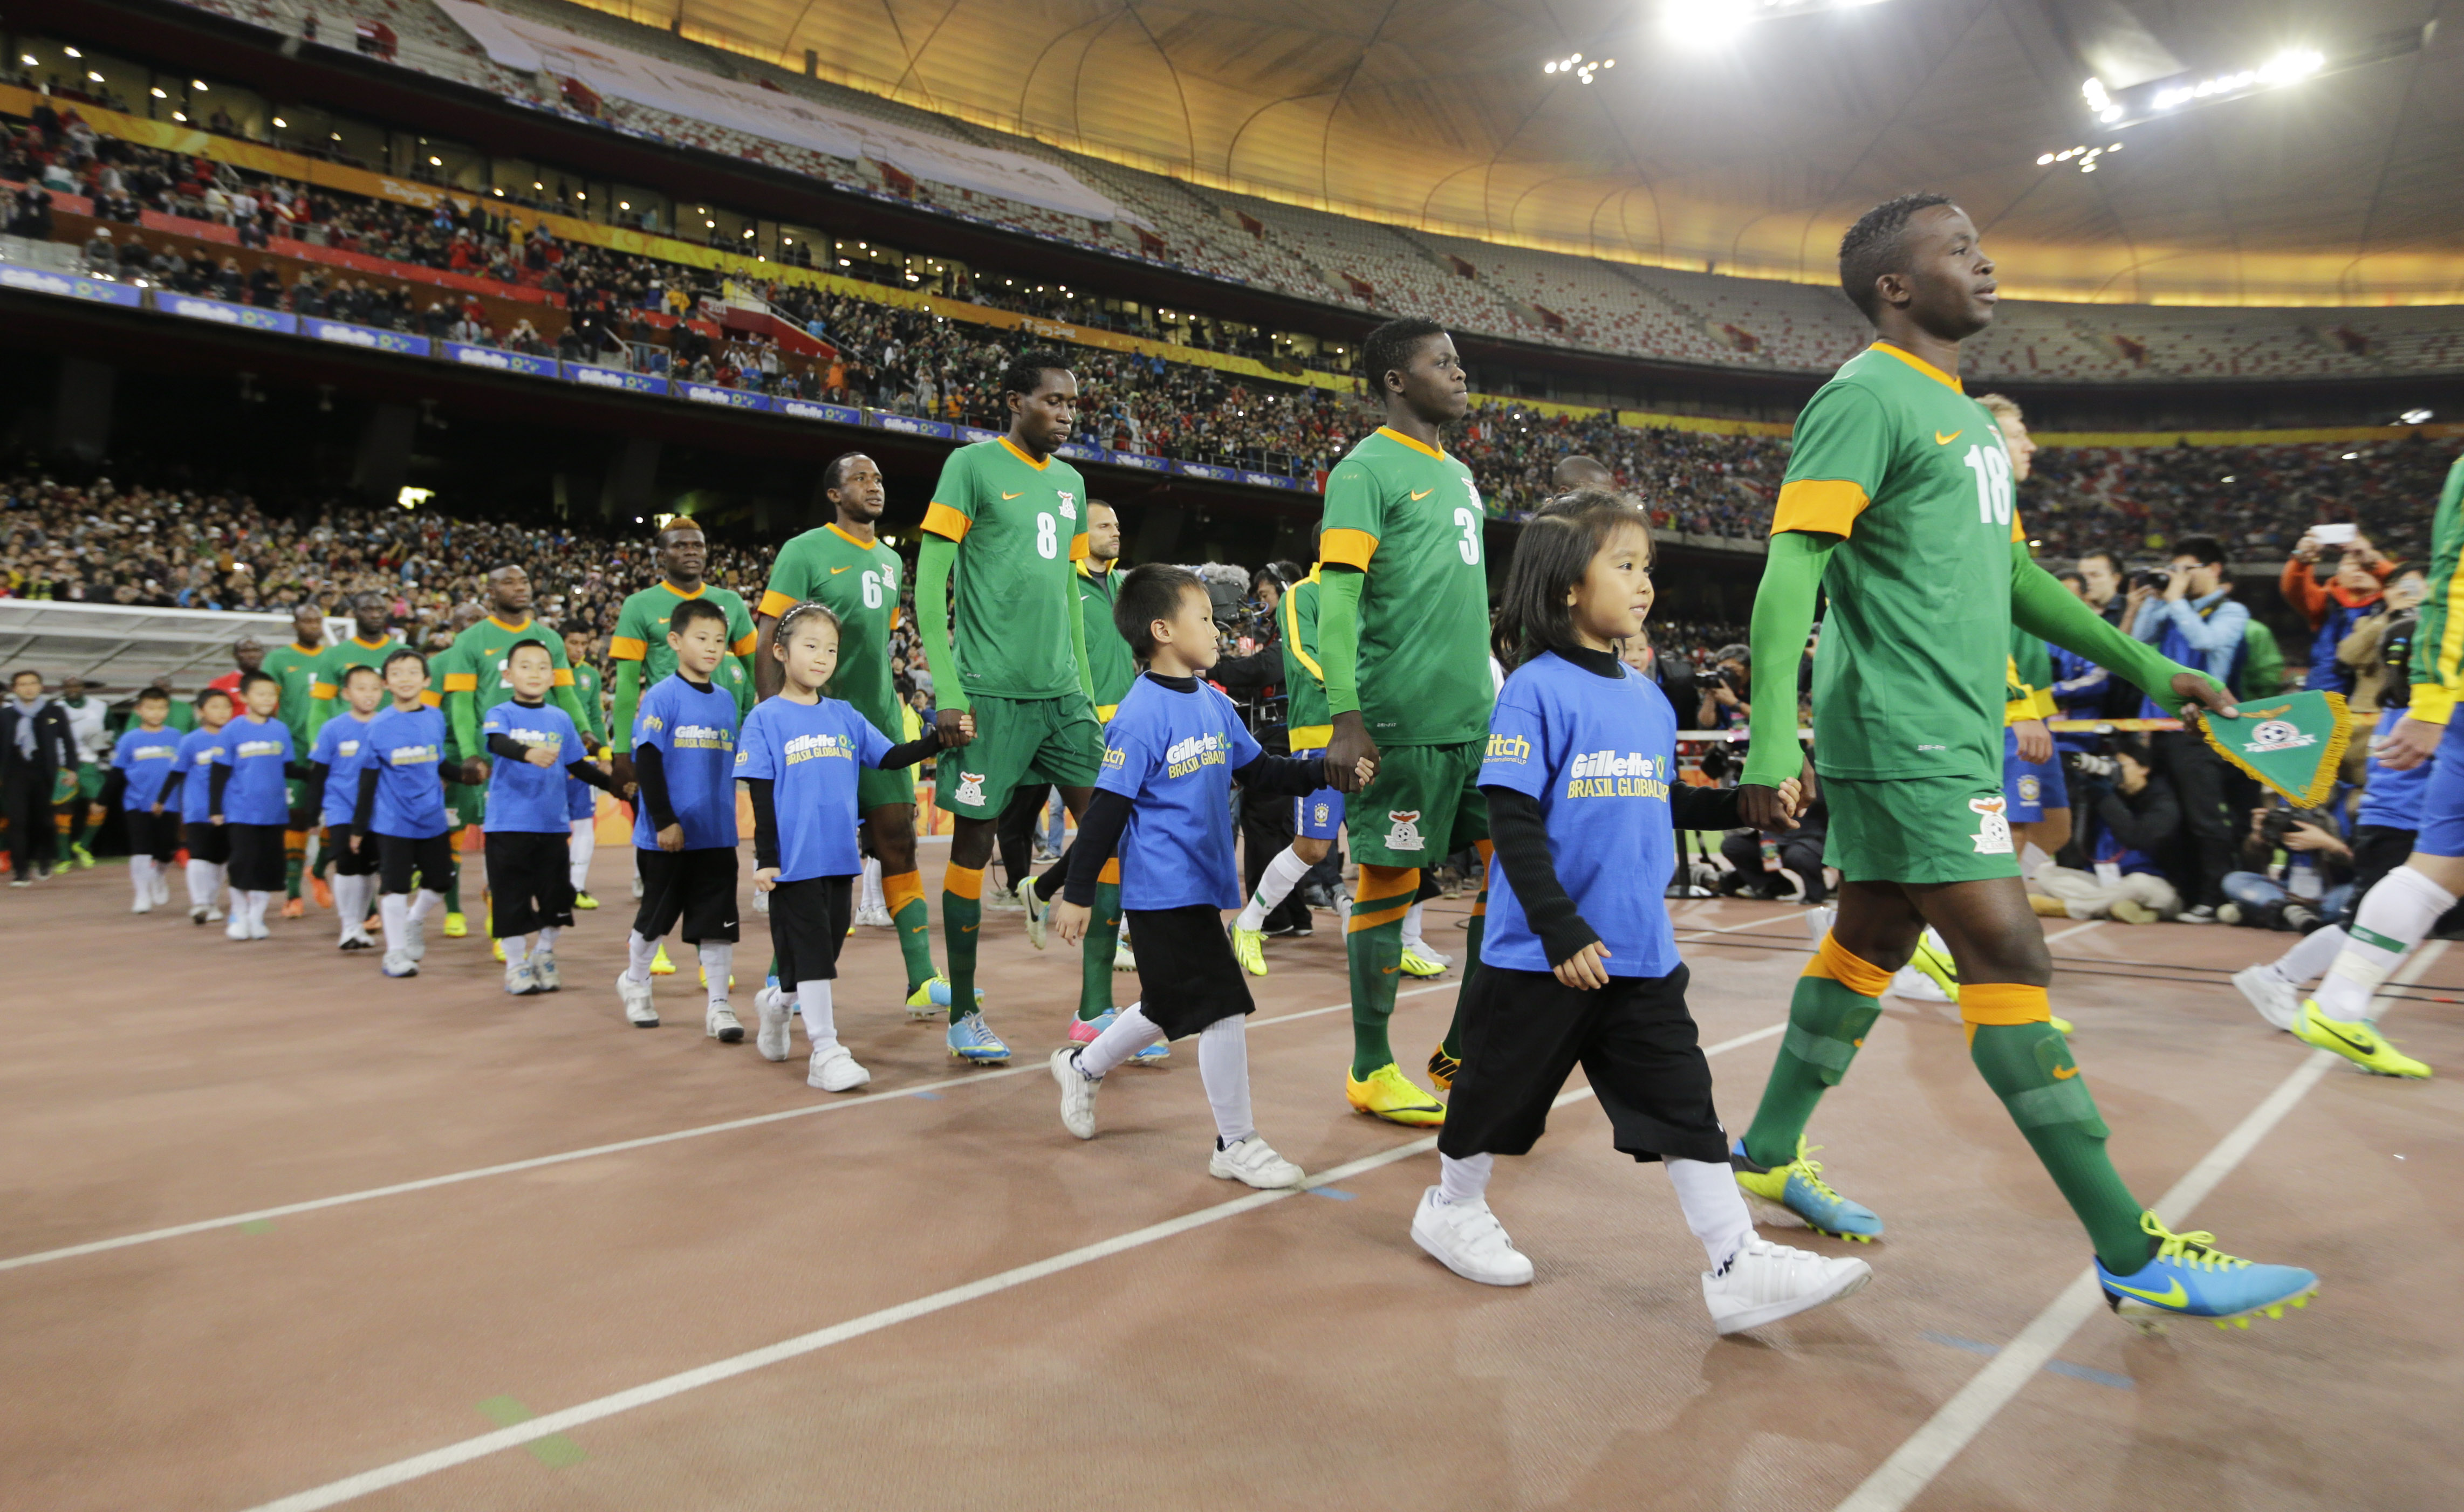 Football - Brazil v Zambia - International Friendly - Beijing National Stadium, Beijing - 15/10/13 Zambia players walk out with mascots Mandatory Credit: Action Images / Liu Yang EDITORIAL USE ONLY.